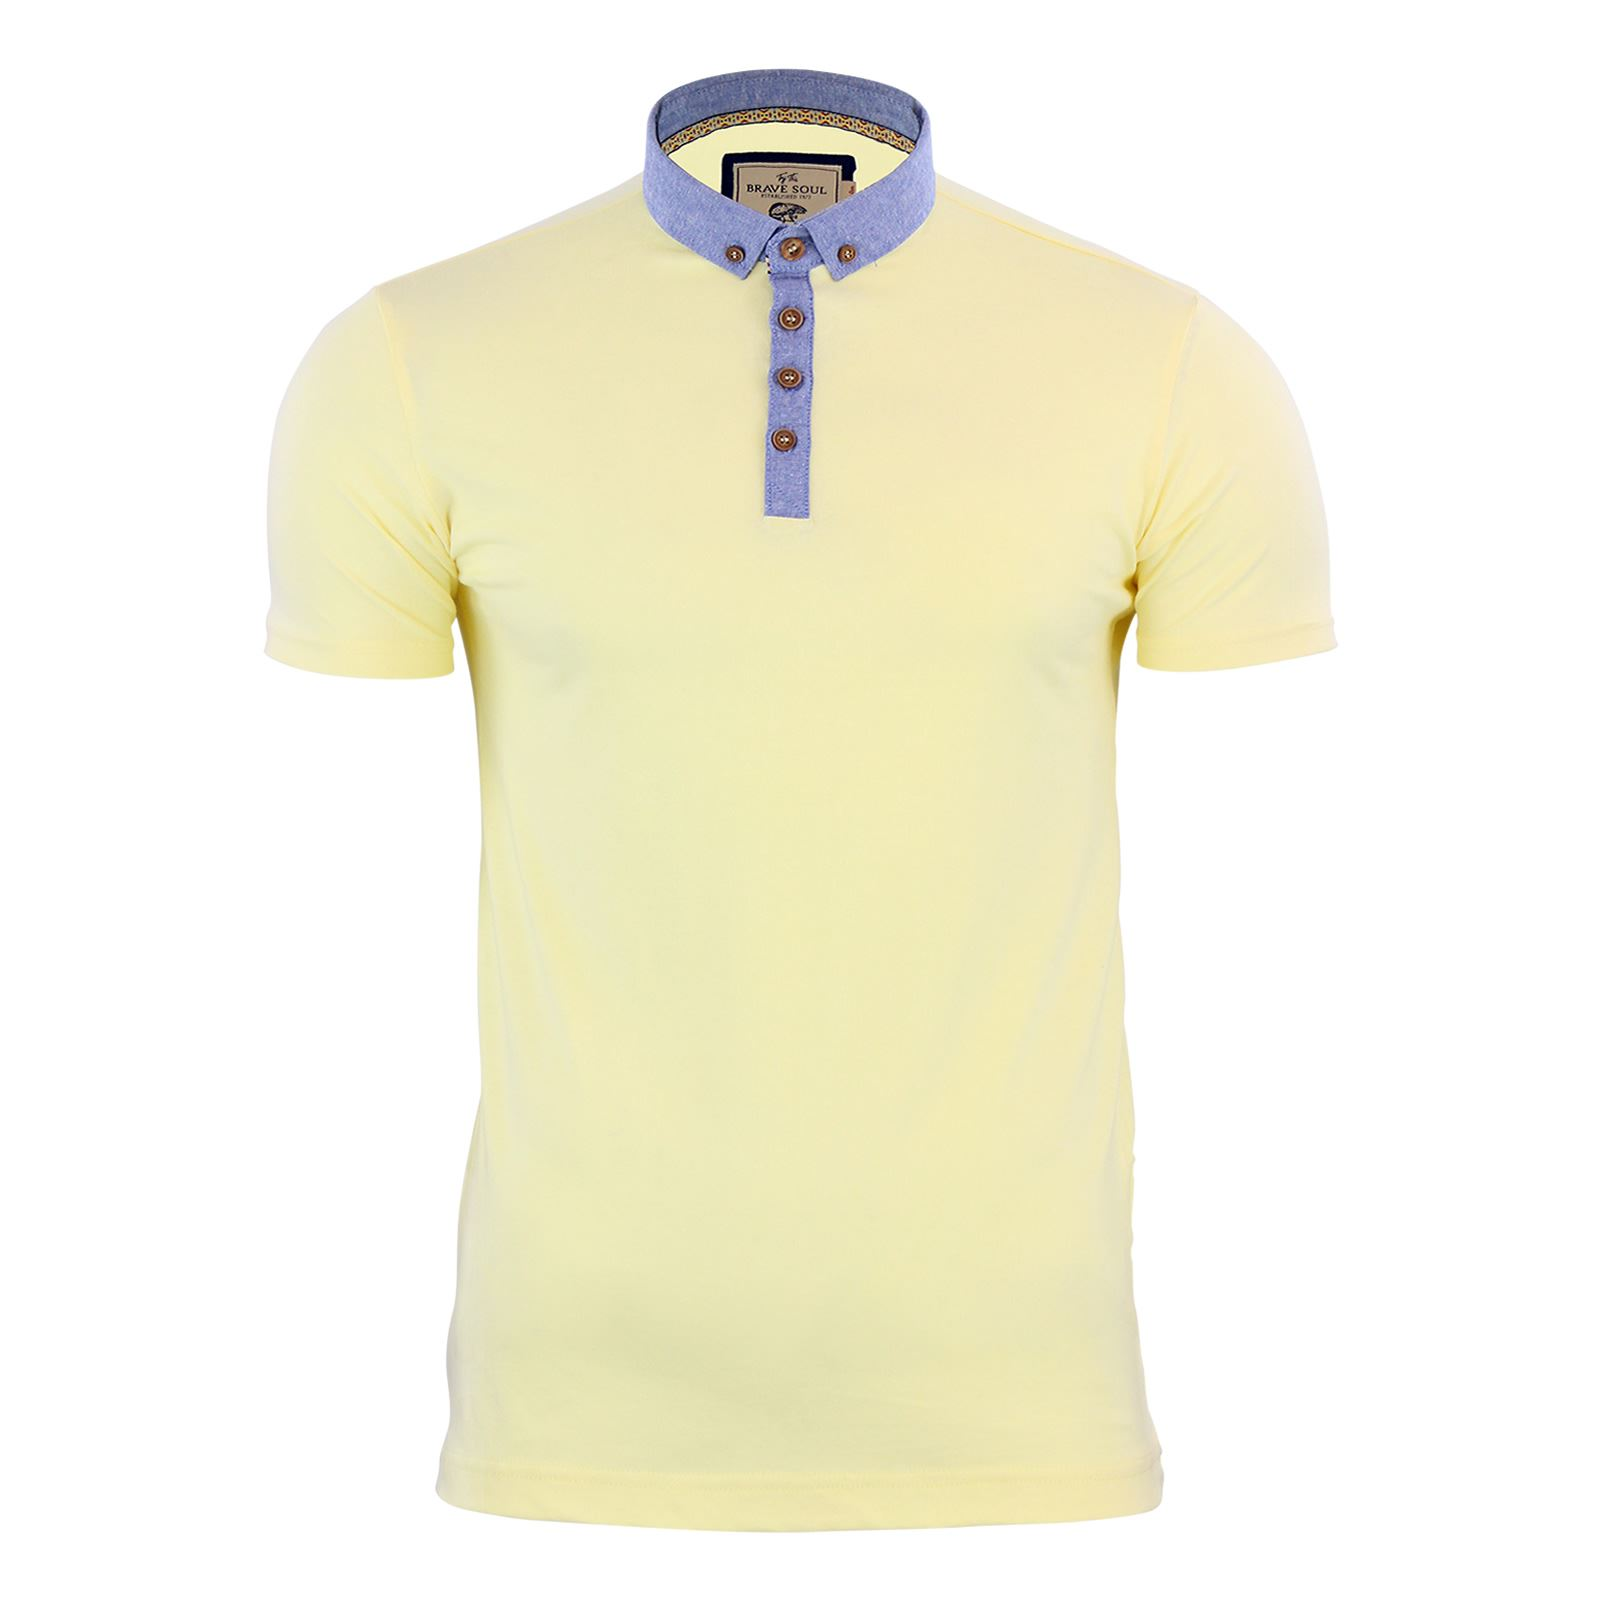 Brave-Soul-Glover-Mens-Polo-T-Shirt-Cotton-Collared-Short-Sleeve-Casual-Top thumbnail 17